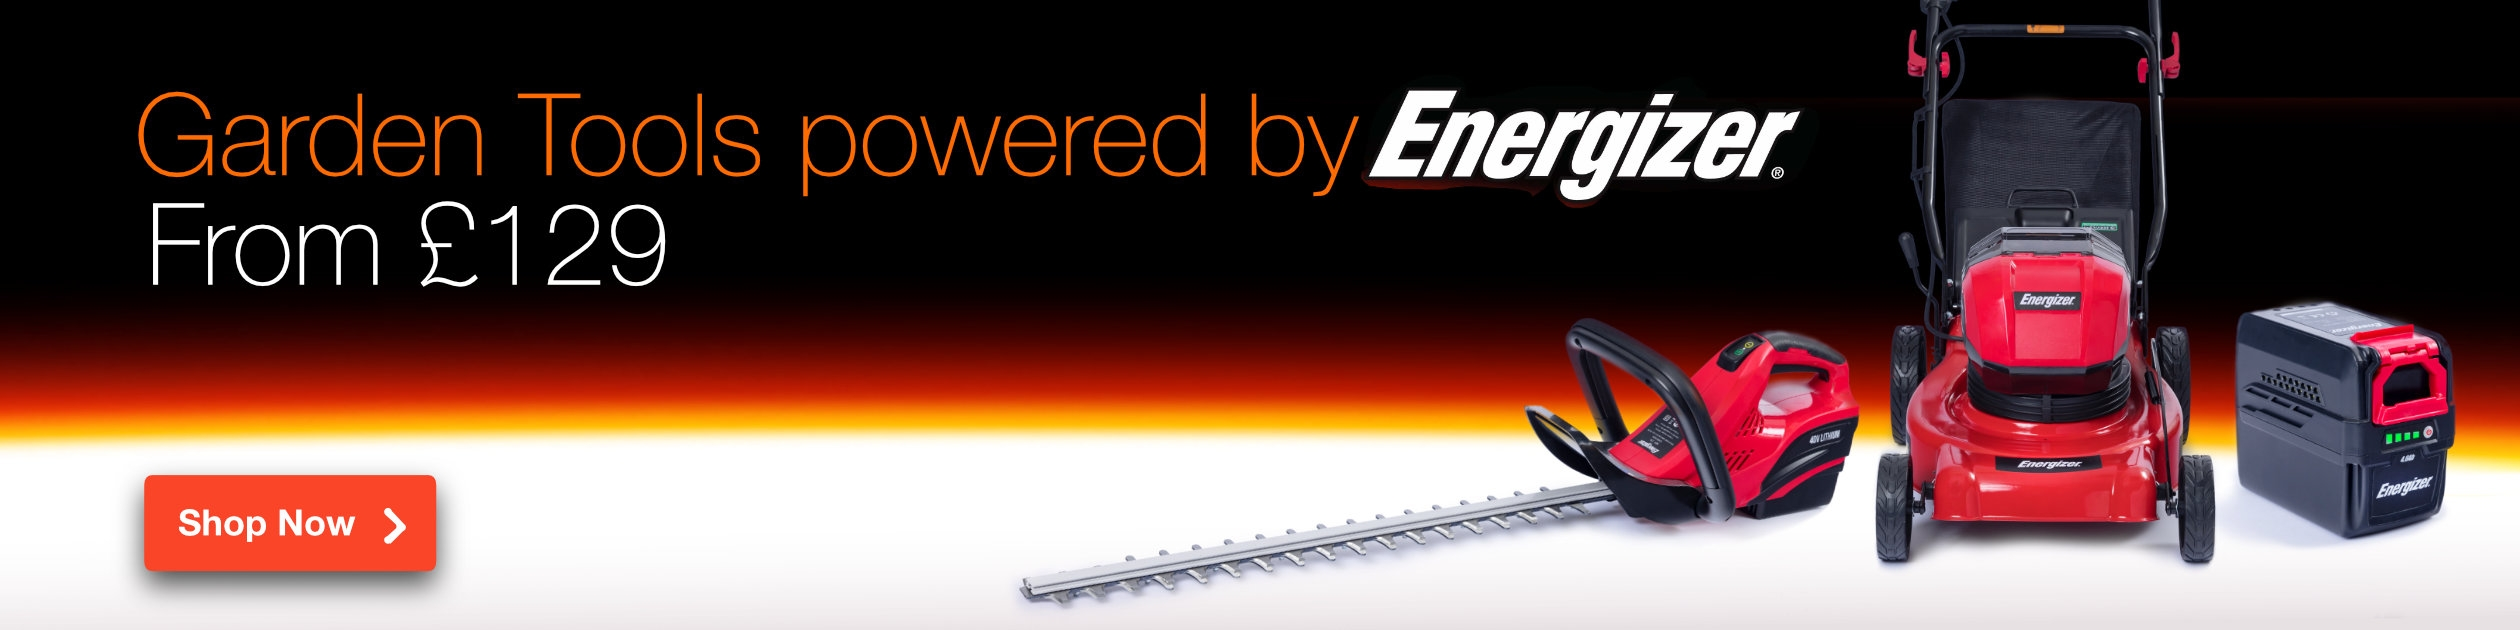 Garden Tools Powered by Energizer